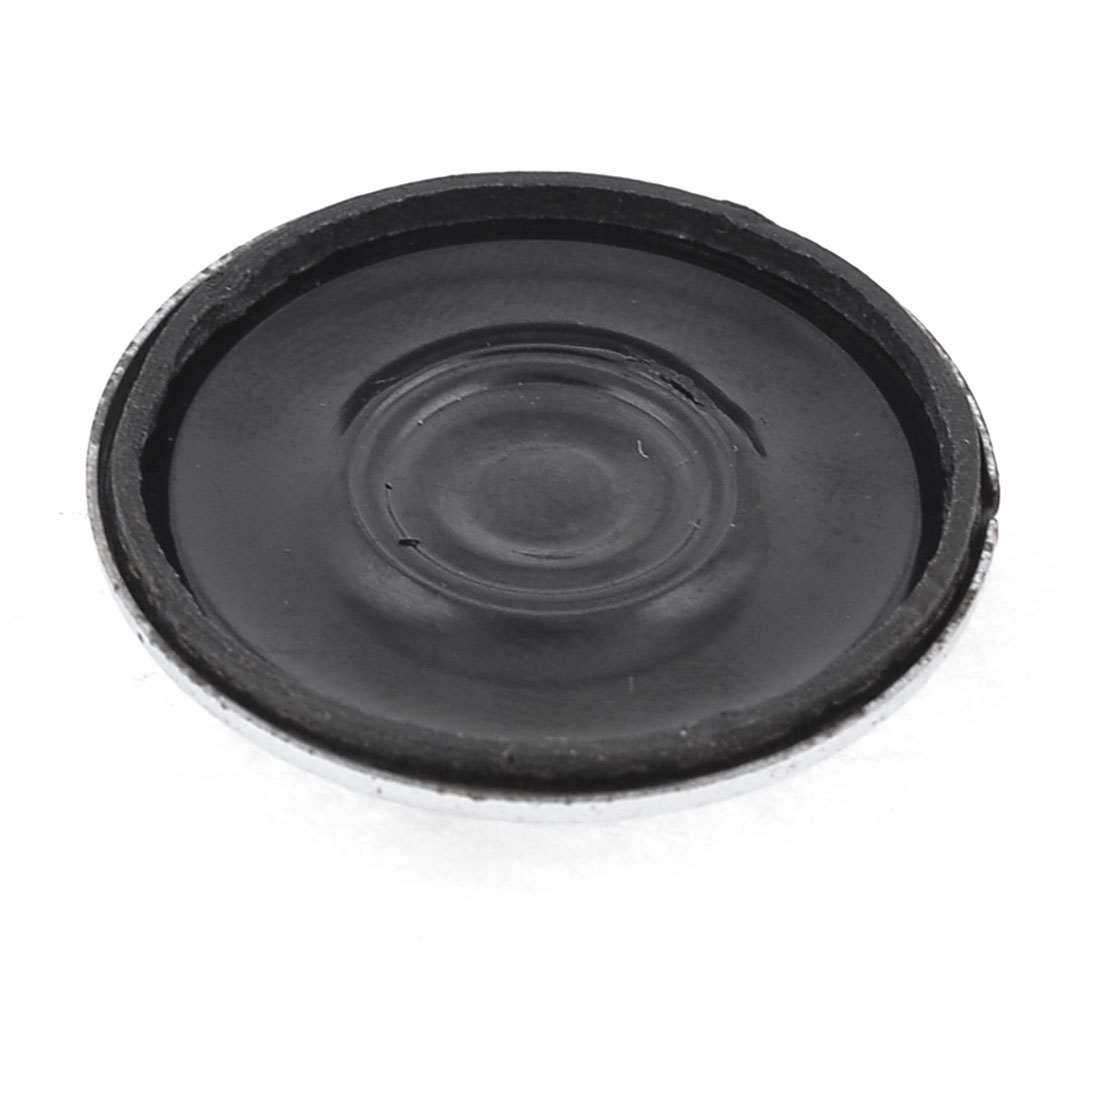 27mm Dia Aluminum Shell Internal Magnet Speaker 8 Ohm 0.25W